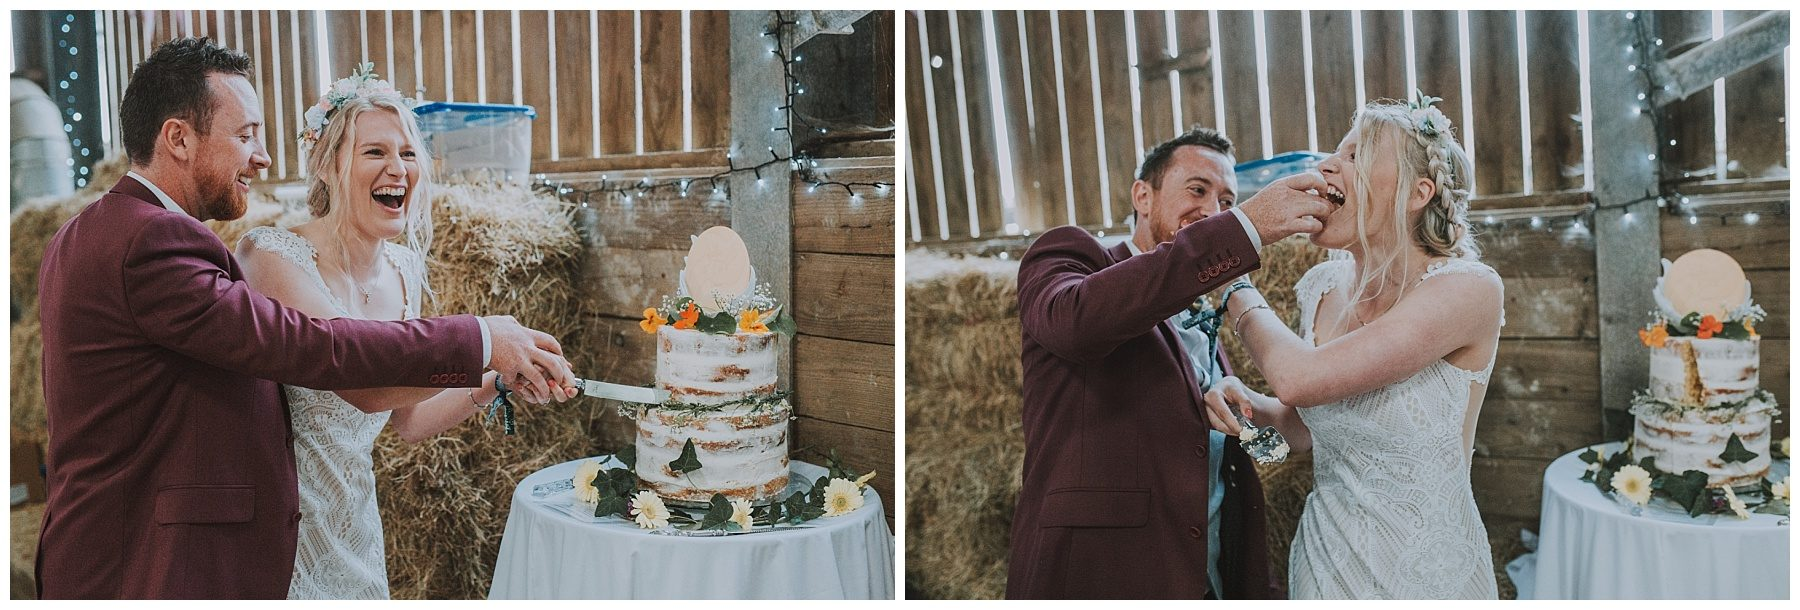 Cornwall rustic barn wedding cake cutting